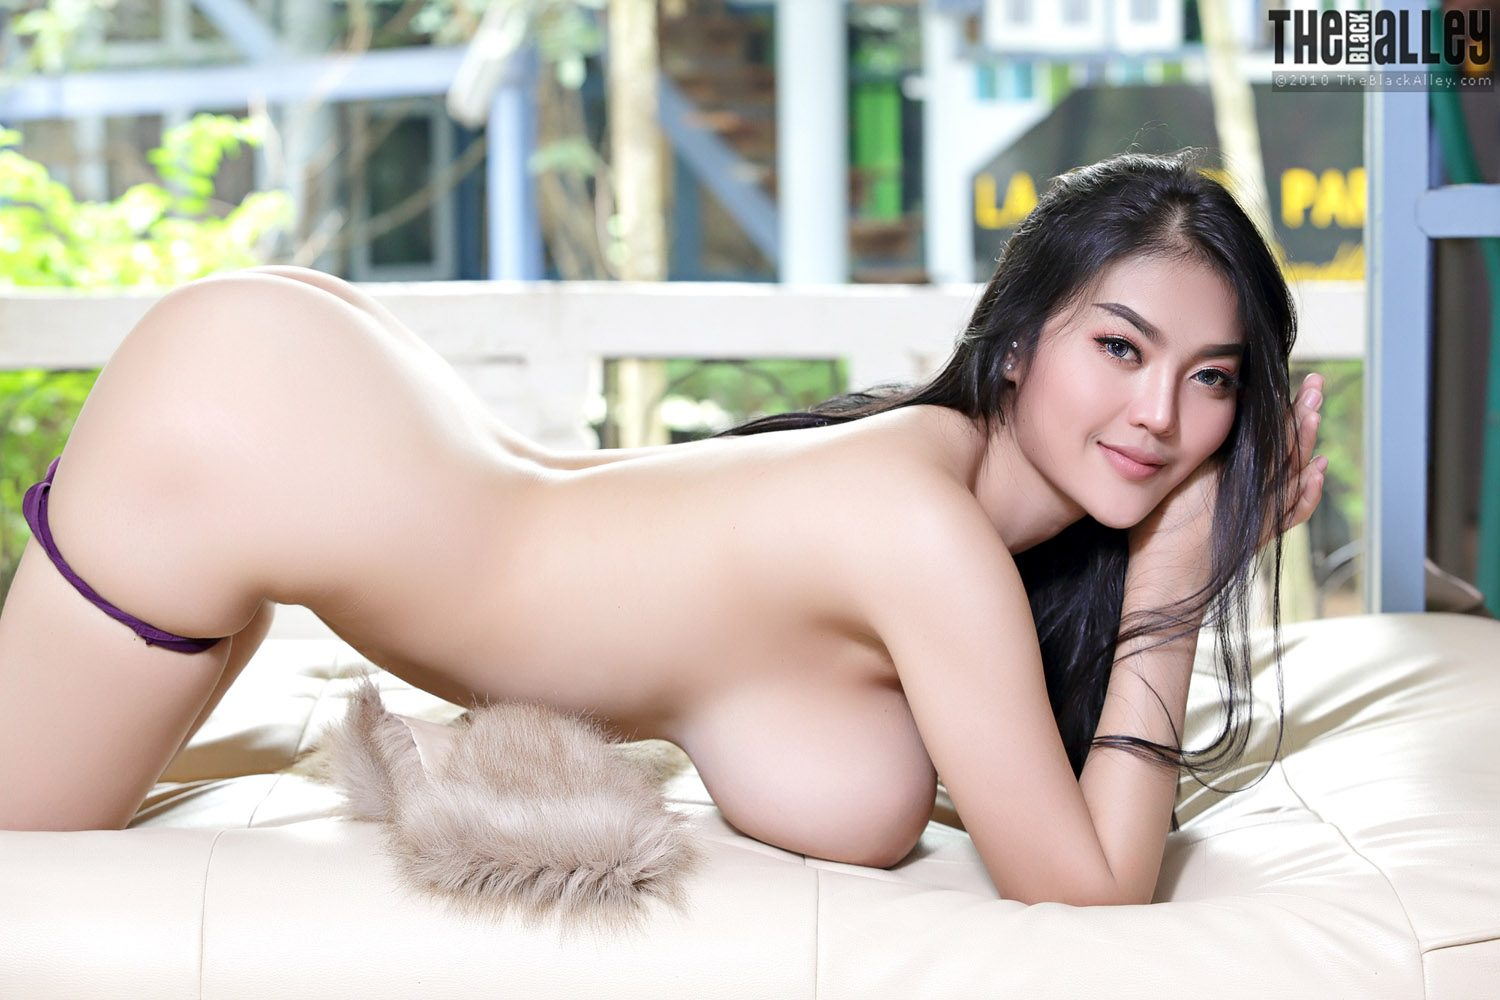 Think, that Asian beauty nude